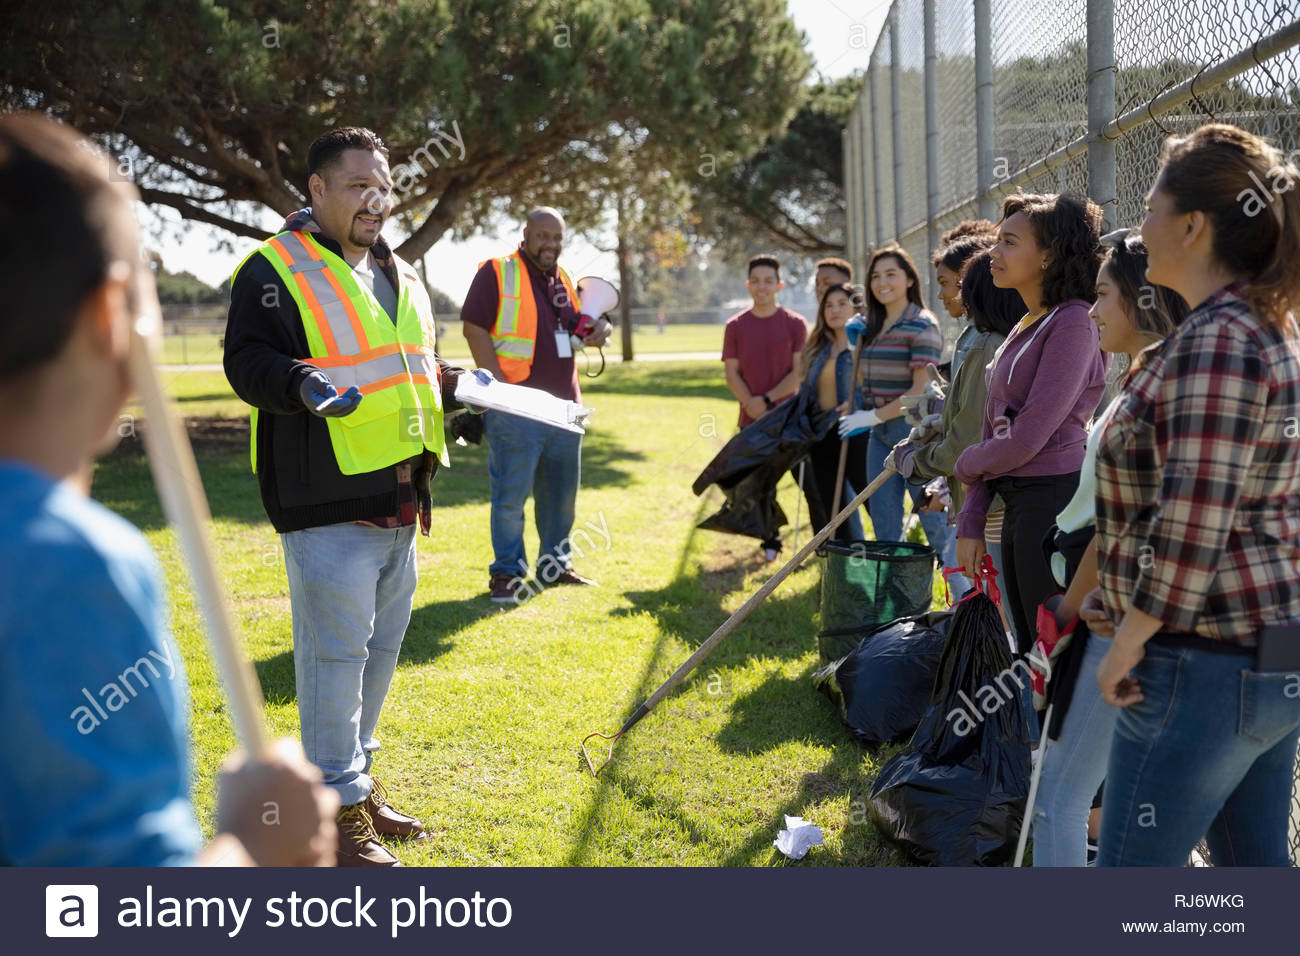 Man in reflective vest leading meeting for volunteers cleaning sunny park - Stock Image